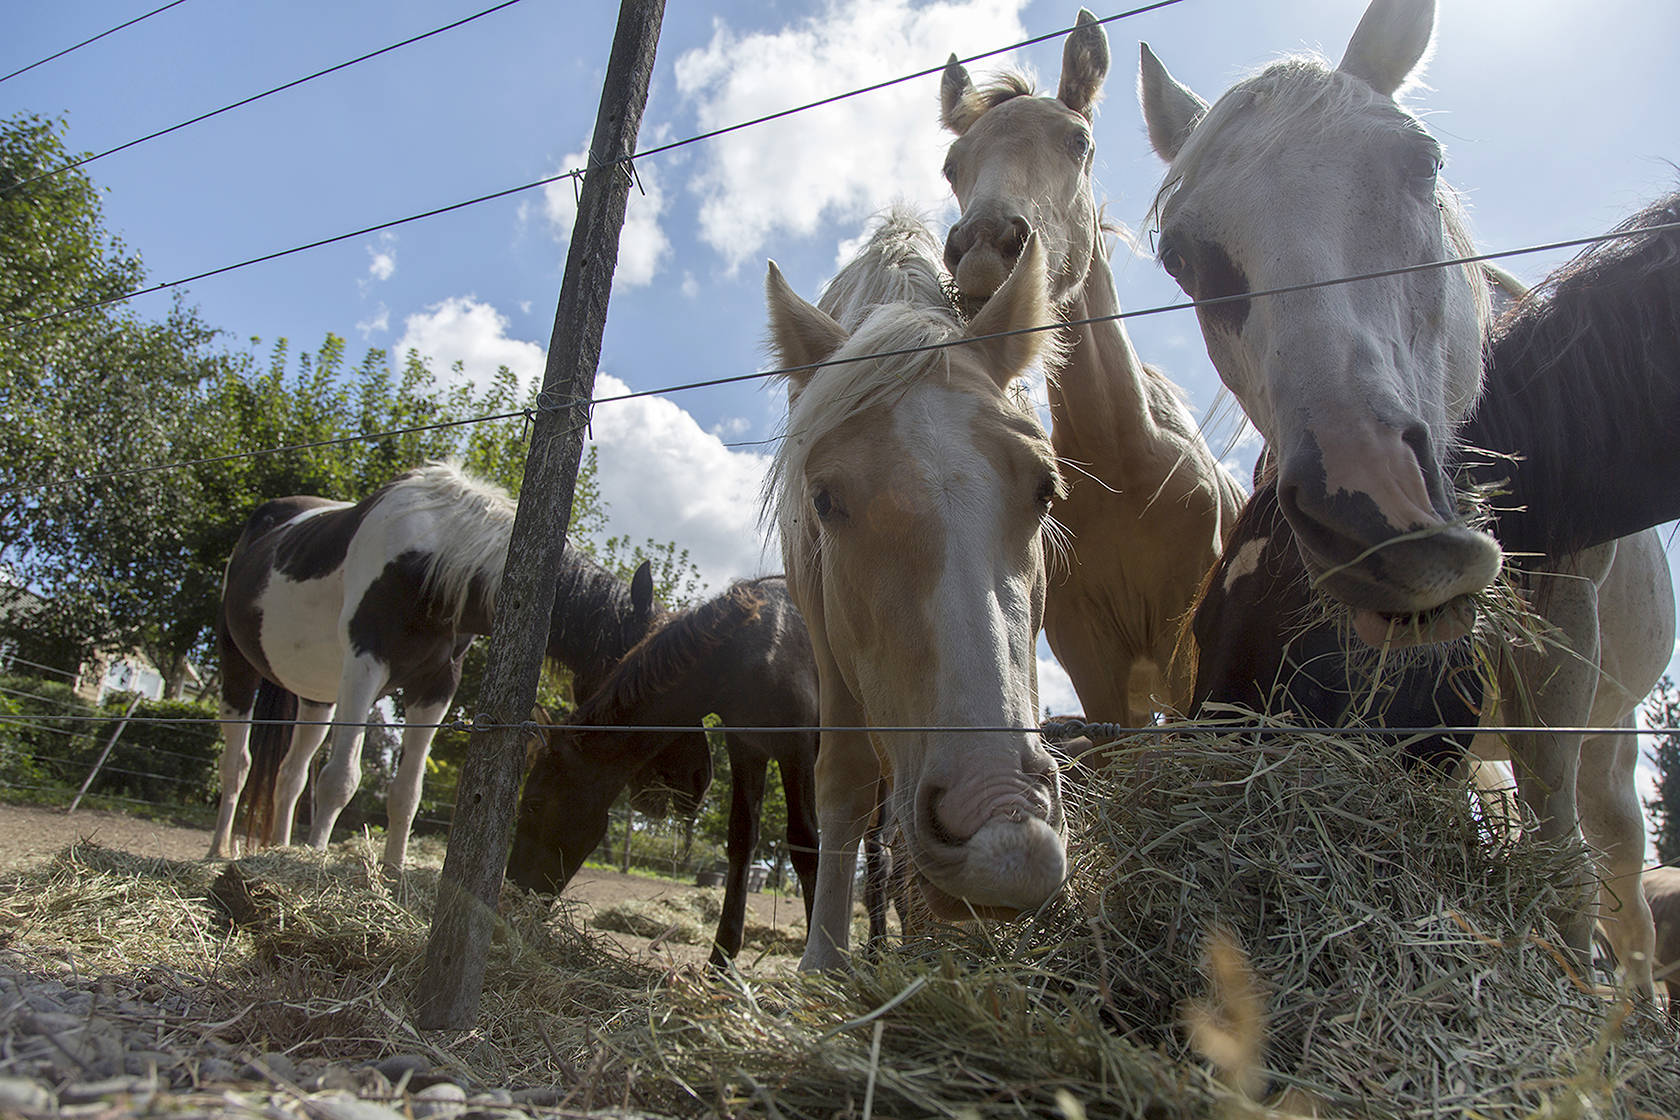 Redmond Reporter: More than 100 horses are being hoarded by a nonprofit in Puget Sound